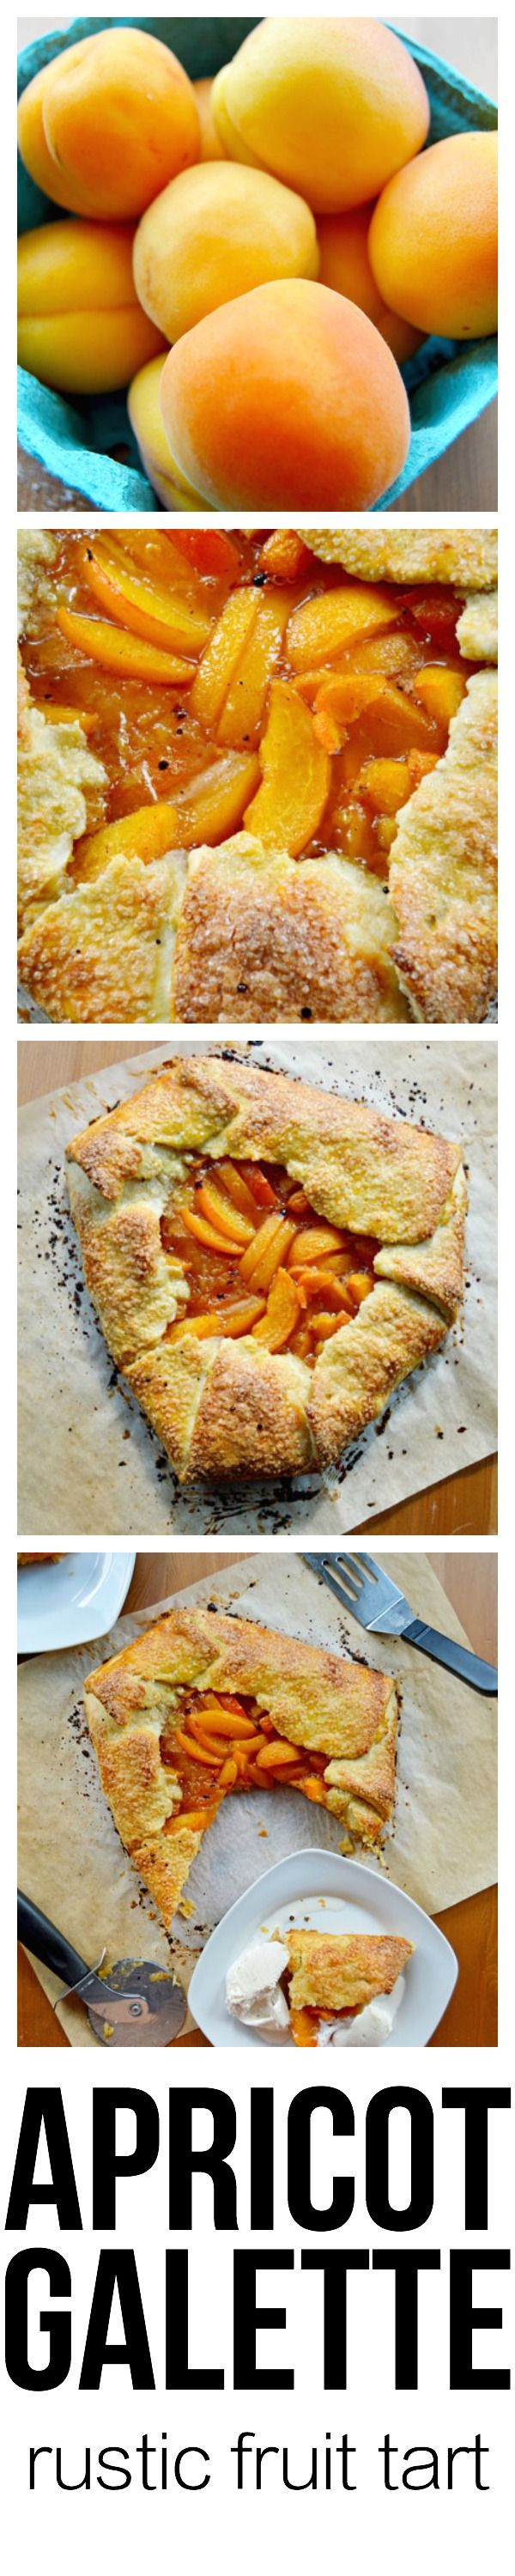 One of the best things I've baked lately is this Apricot Galette. Ripe apricots are baked to a jammy consistency and enveloped in a crispy, golden brown pastry crust that has been sprinkled with crunchy sugar. It's elegant, effortlessly sophisticated, and way easier than it looks. If you aren't into apricots, nearly any fruit can be substituted. This pin has step-by-step tutorials for the galette and pie dough   thehungrytravelerblog.com